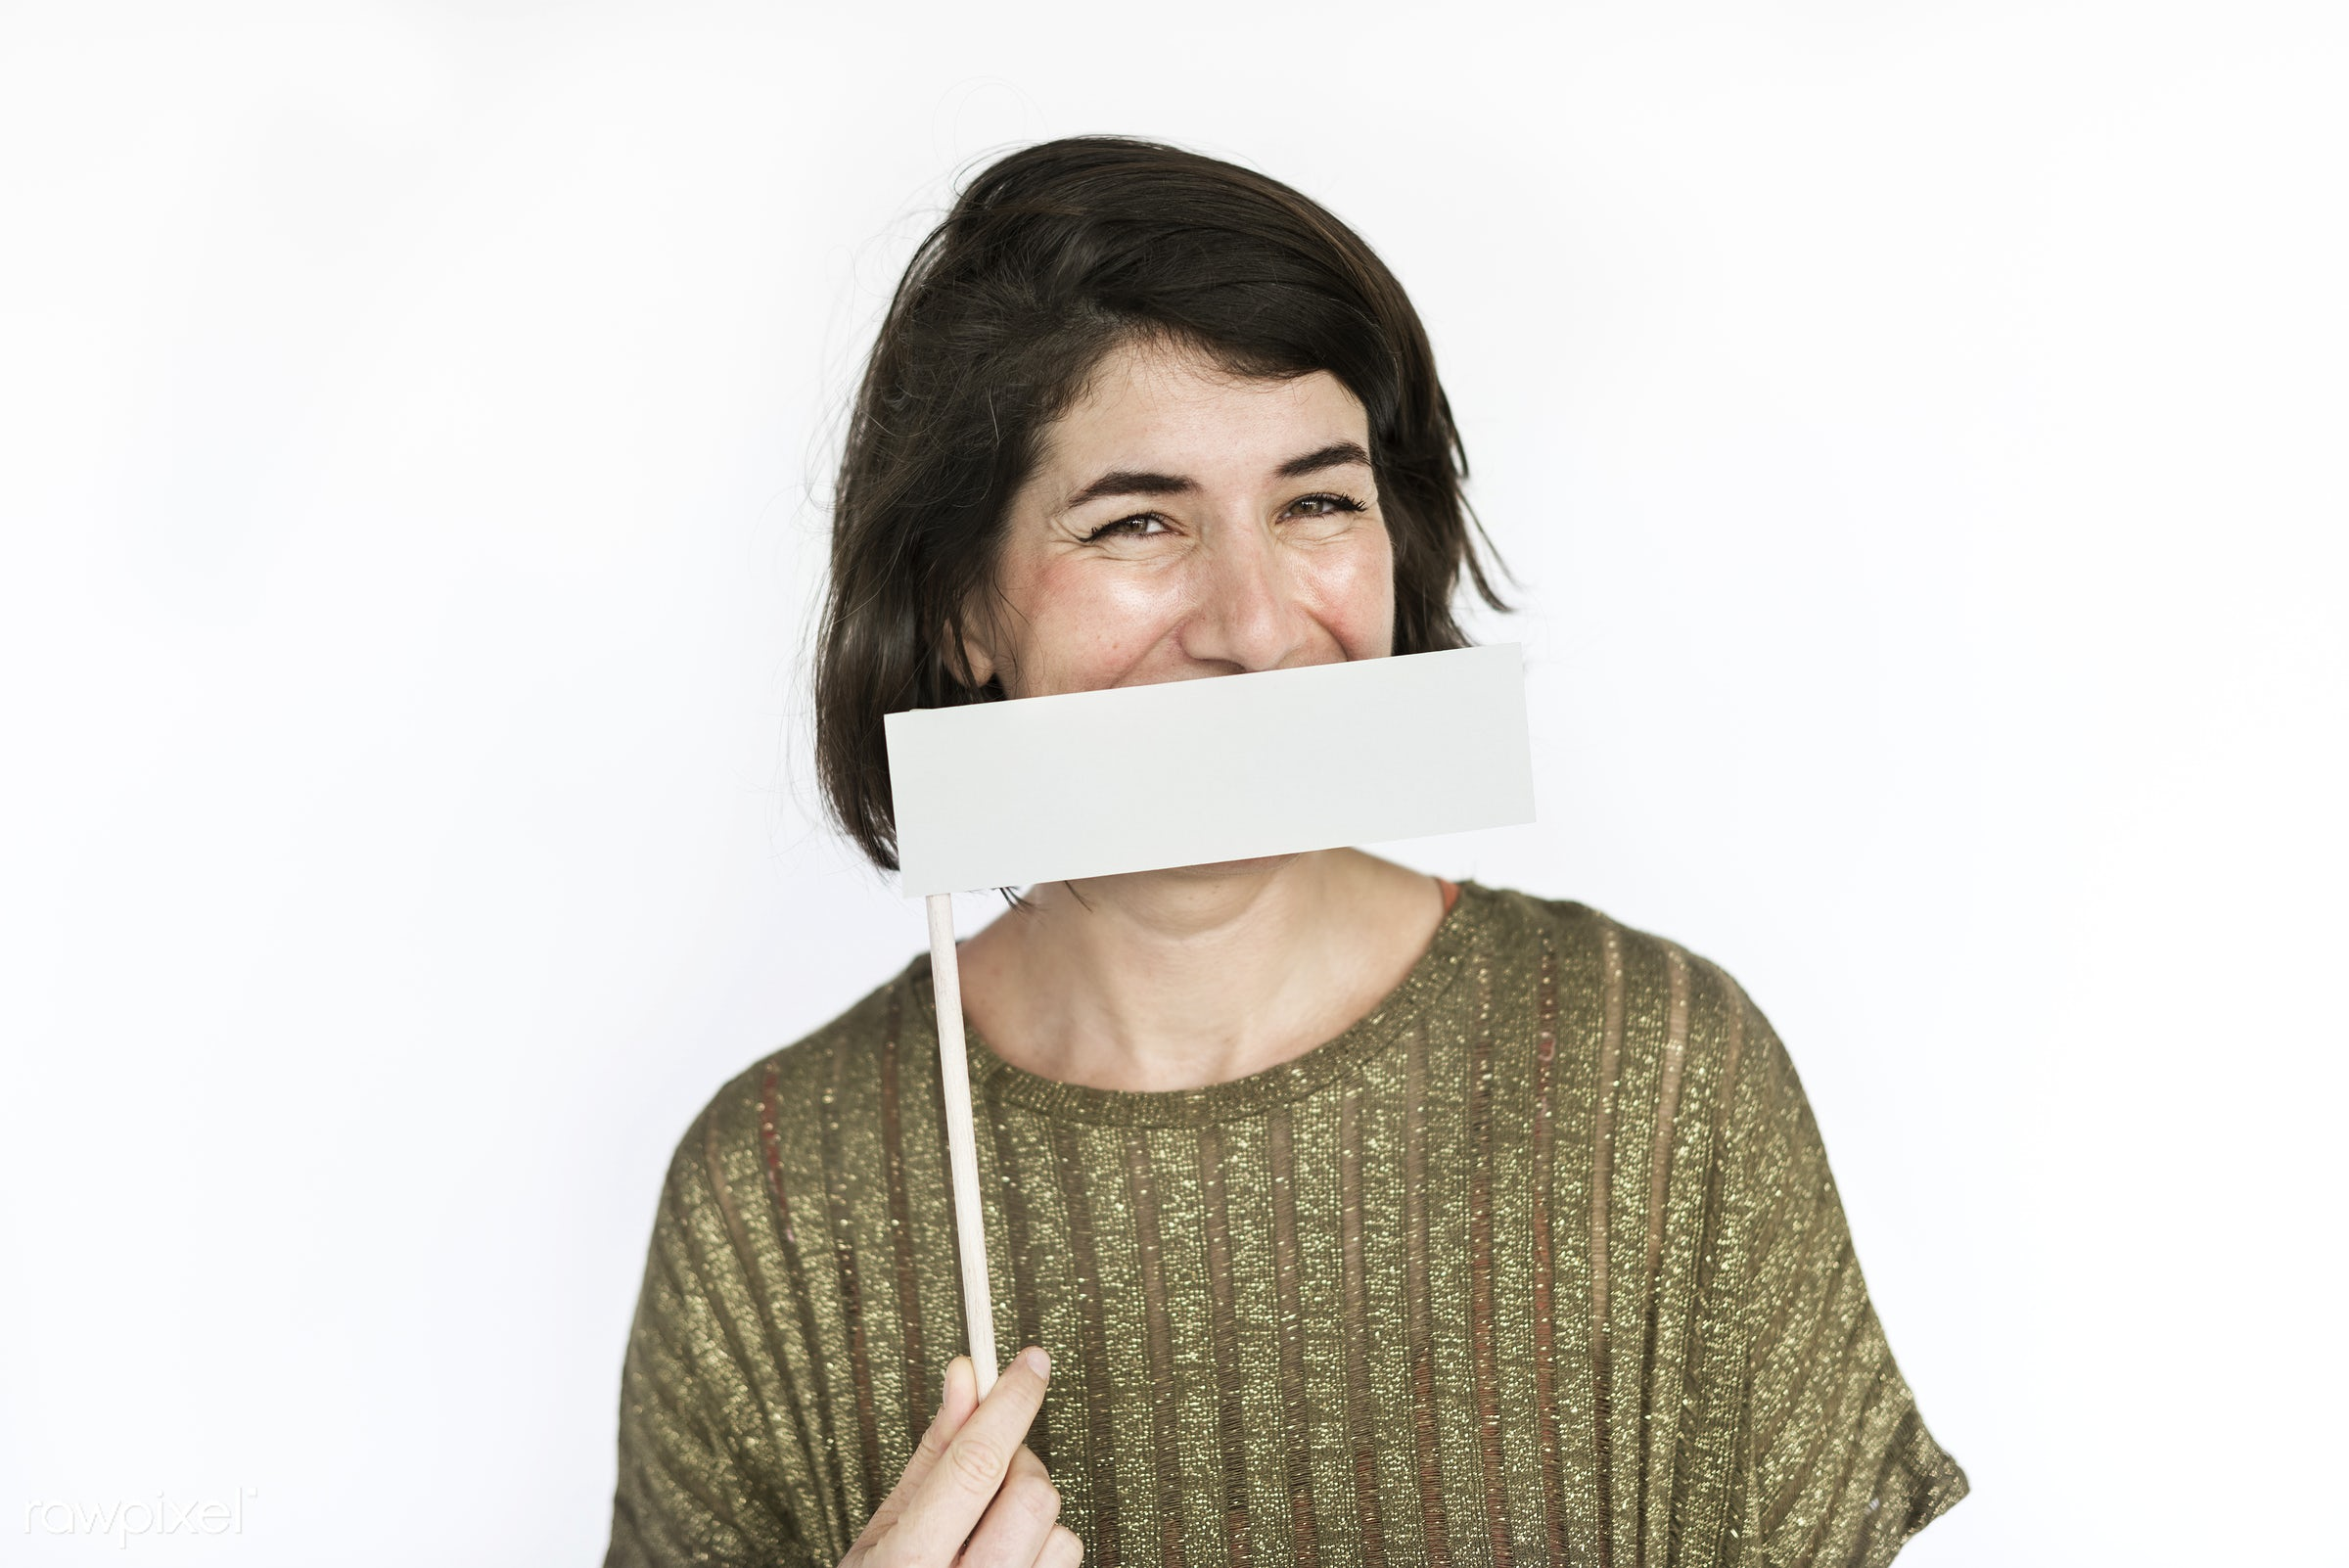 studio, expression, person, copy space, joy, isolated on white, carefree, people, caucasian, placard, laughing, fresh, woman...